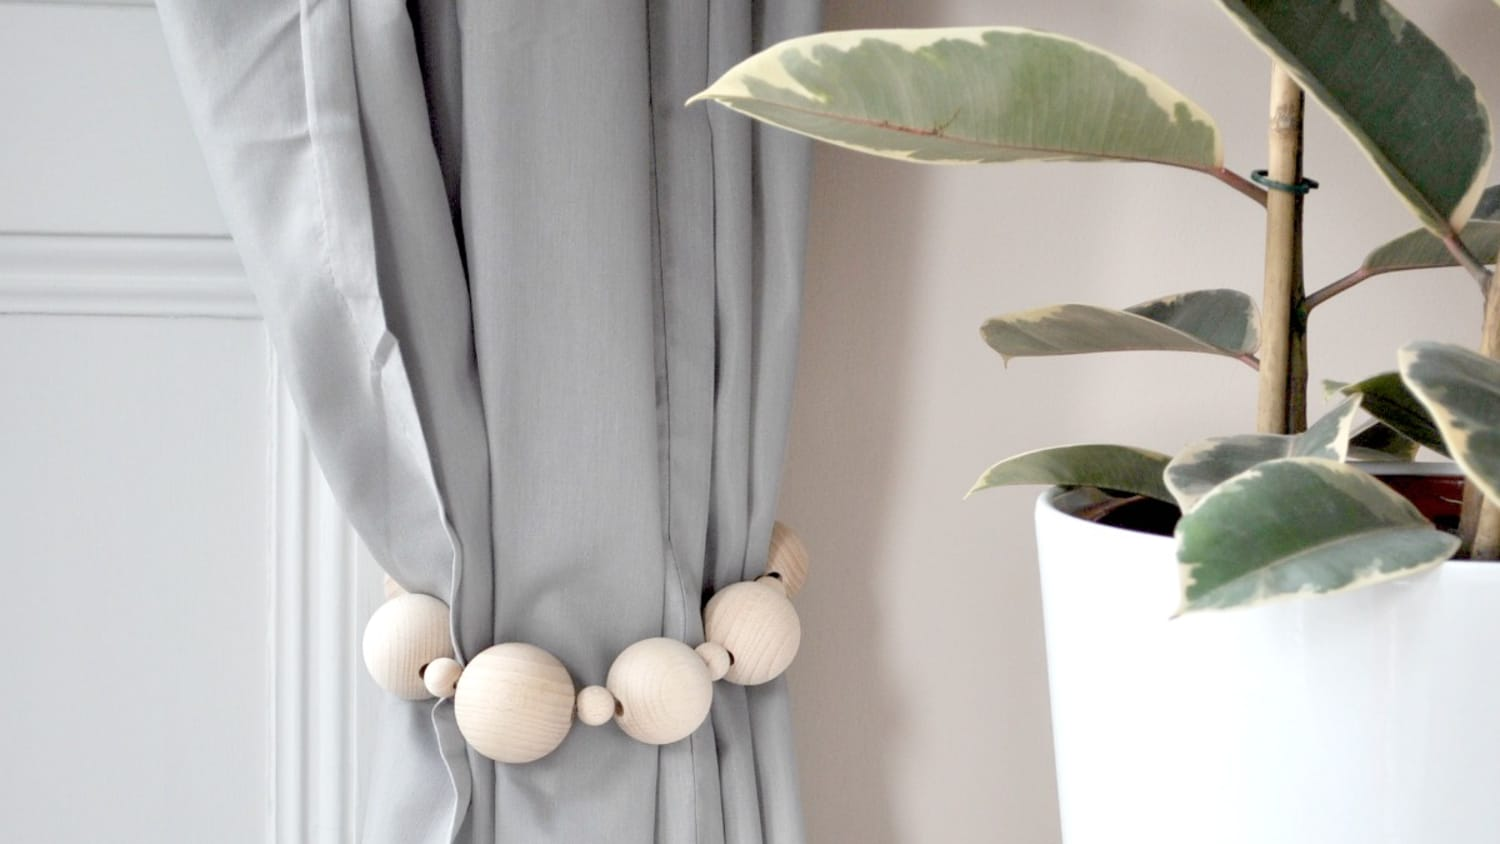 Diy Curtain Tie Back Pull Back Projects Apartment Therapy